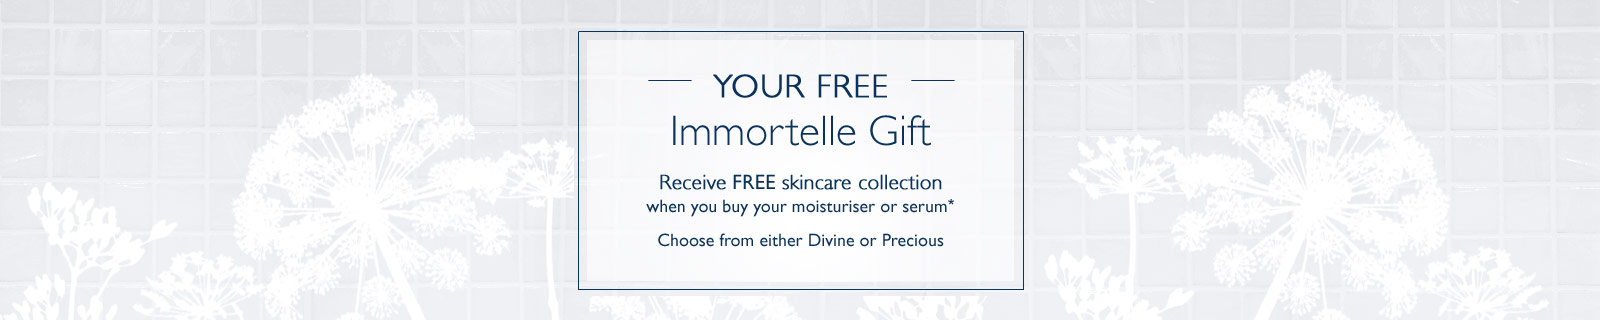 Your Free Immortelle Gift